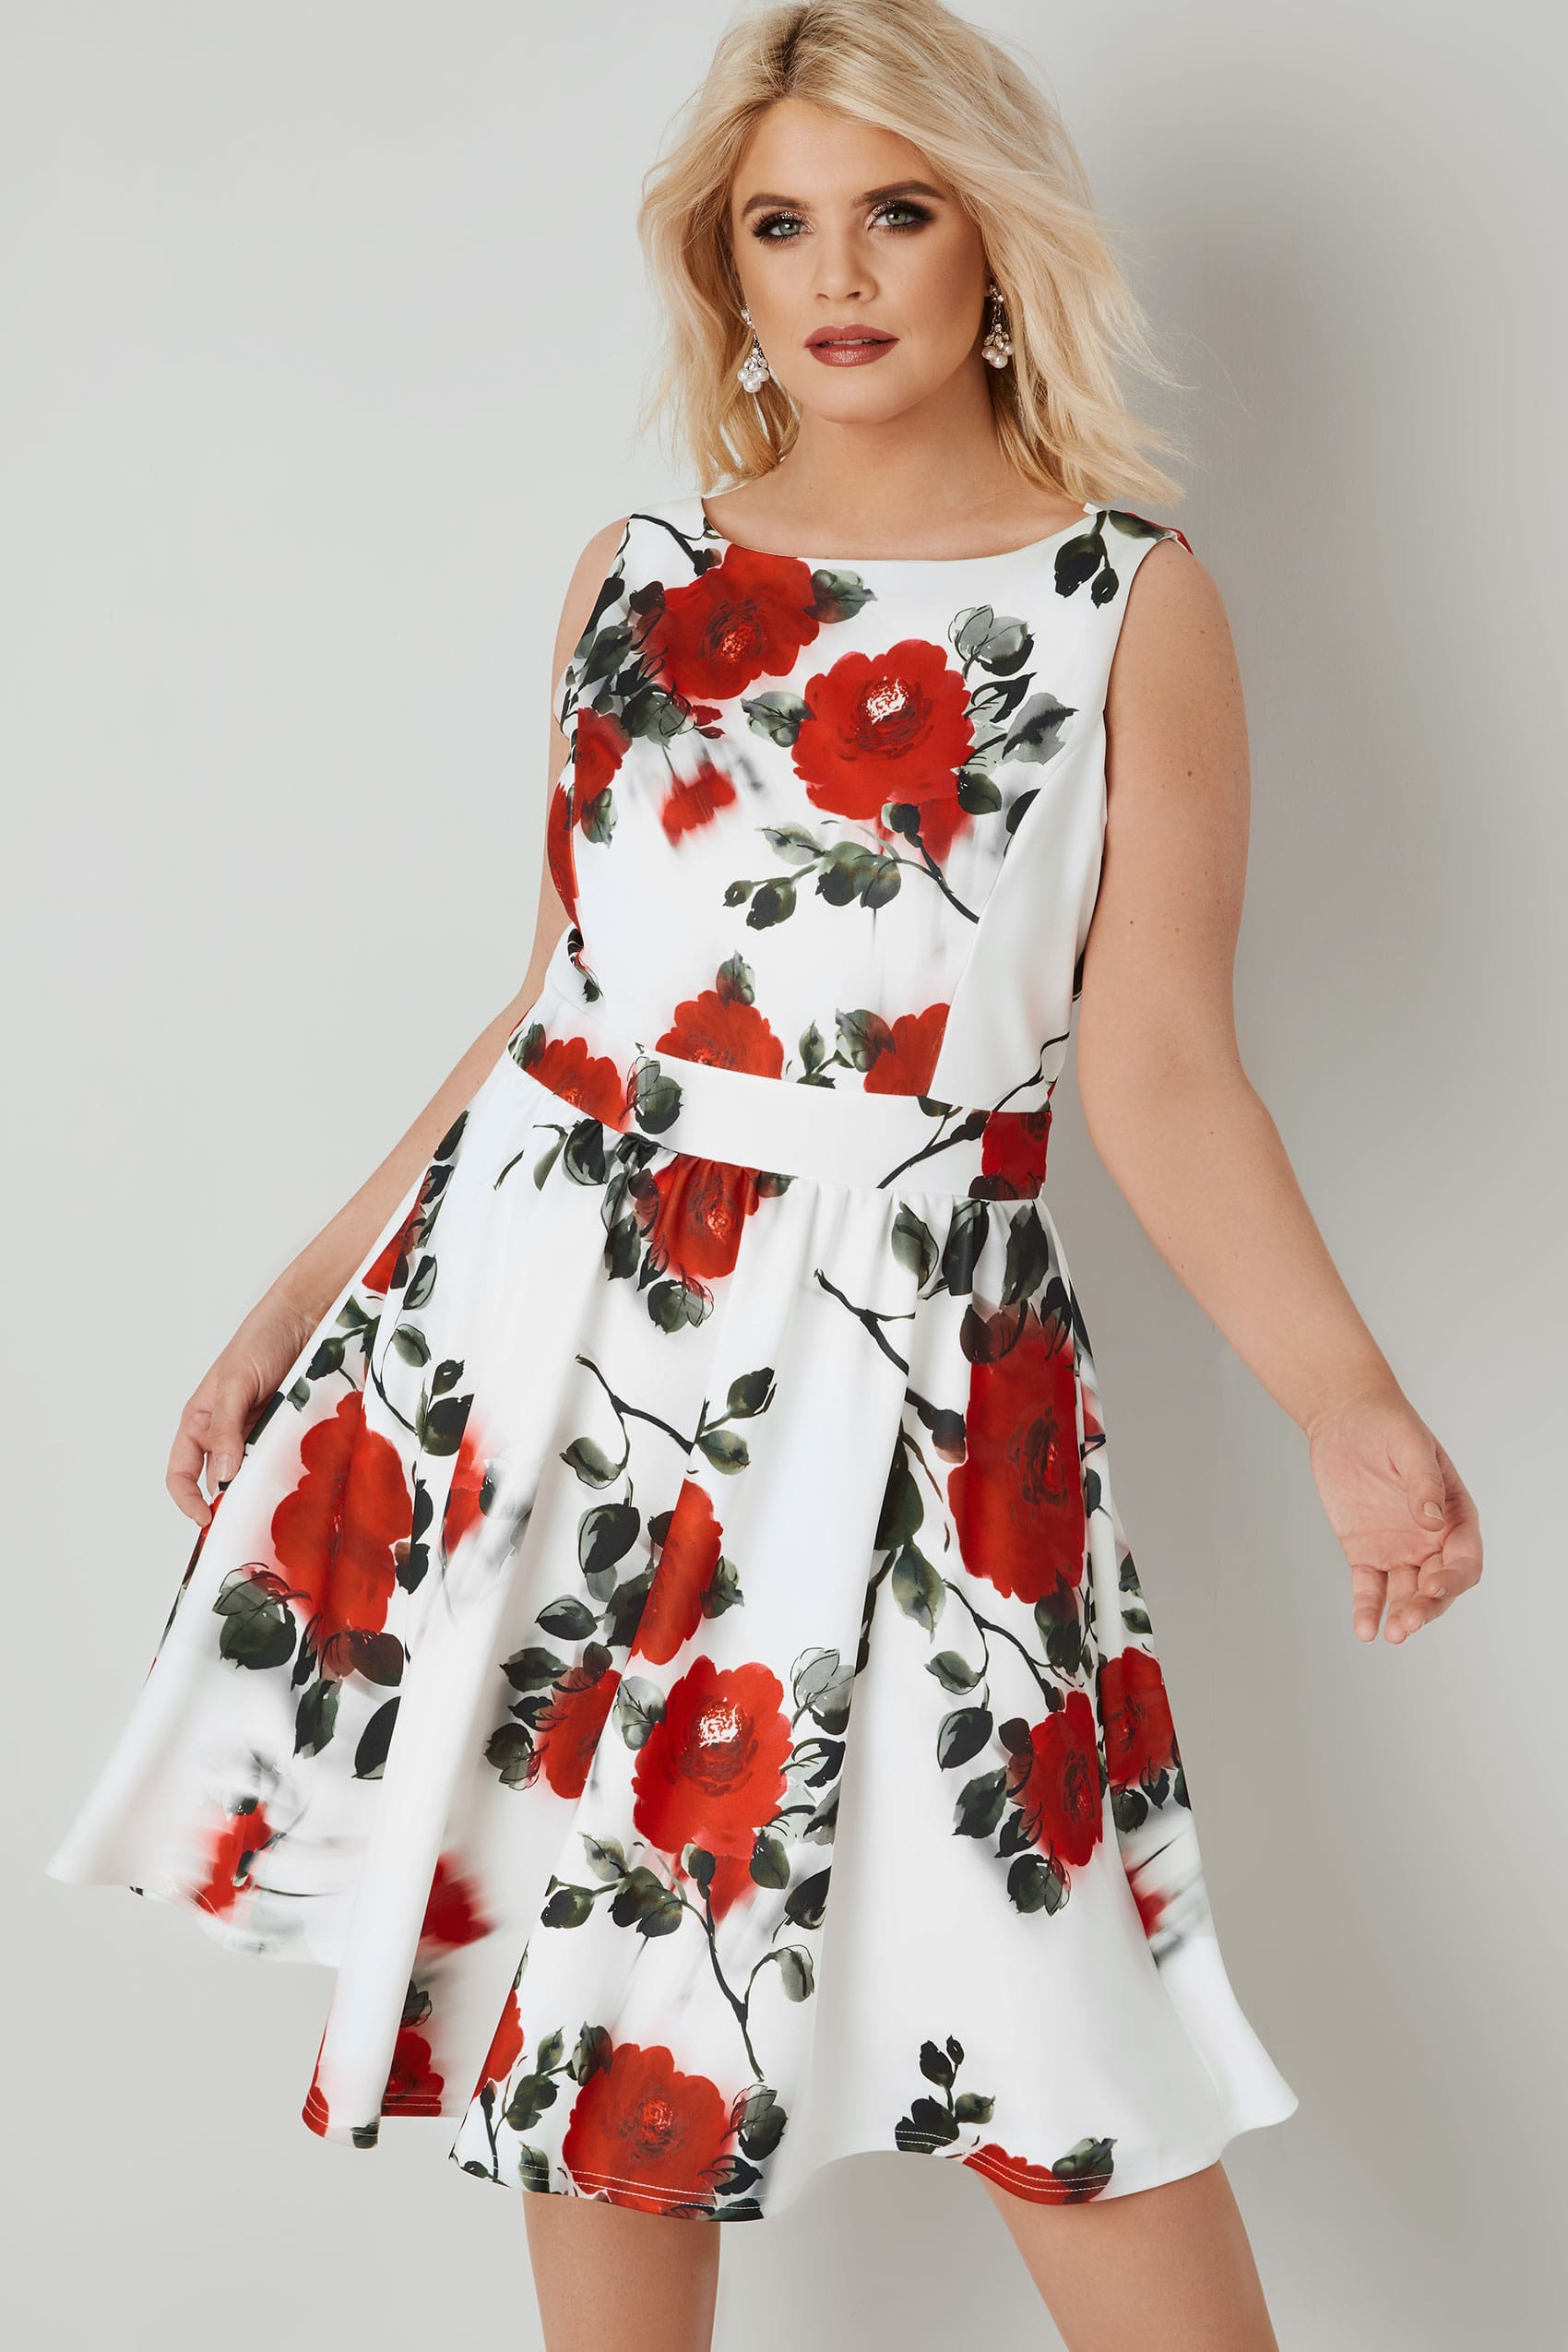 813226a2ff LADY VOLUPTUOUS White   Red Rose Print Dress